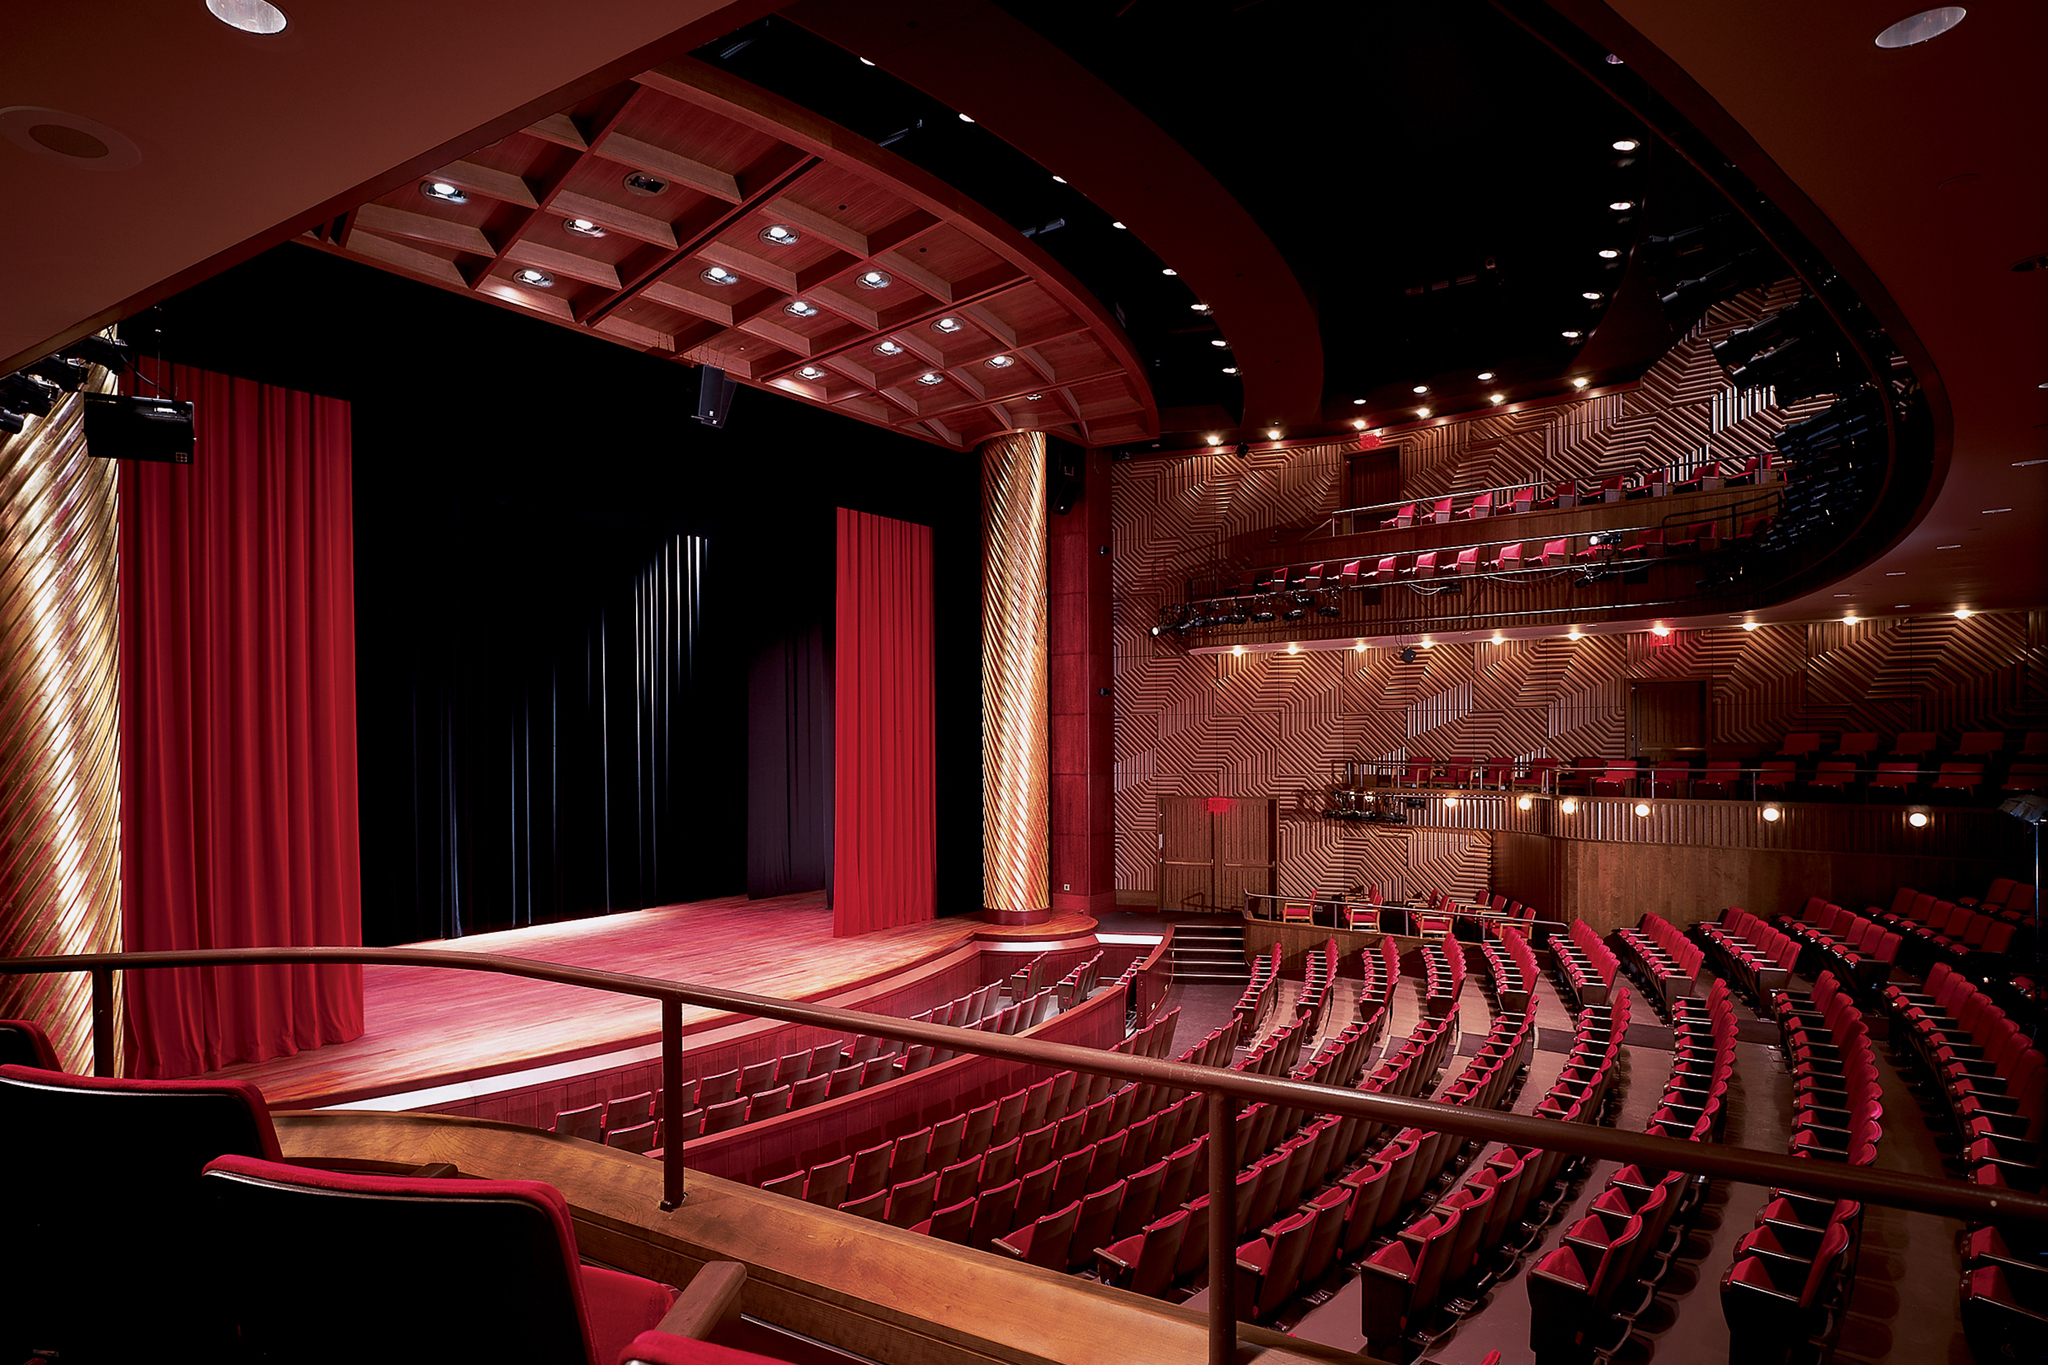 Performing arts theater